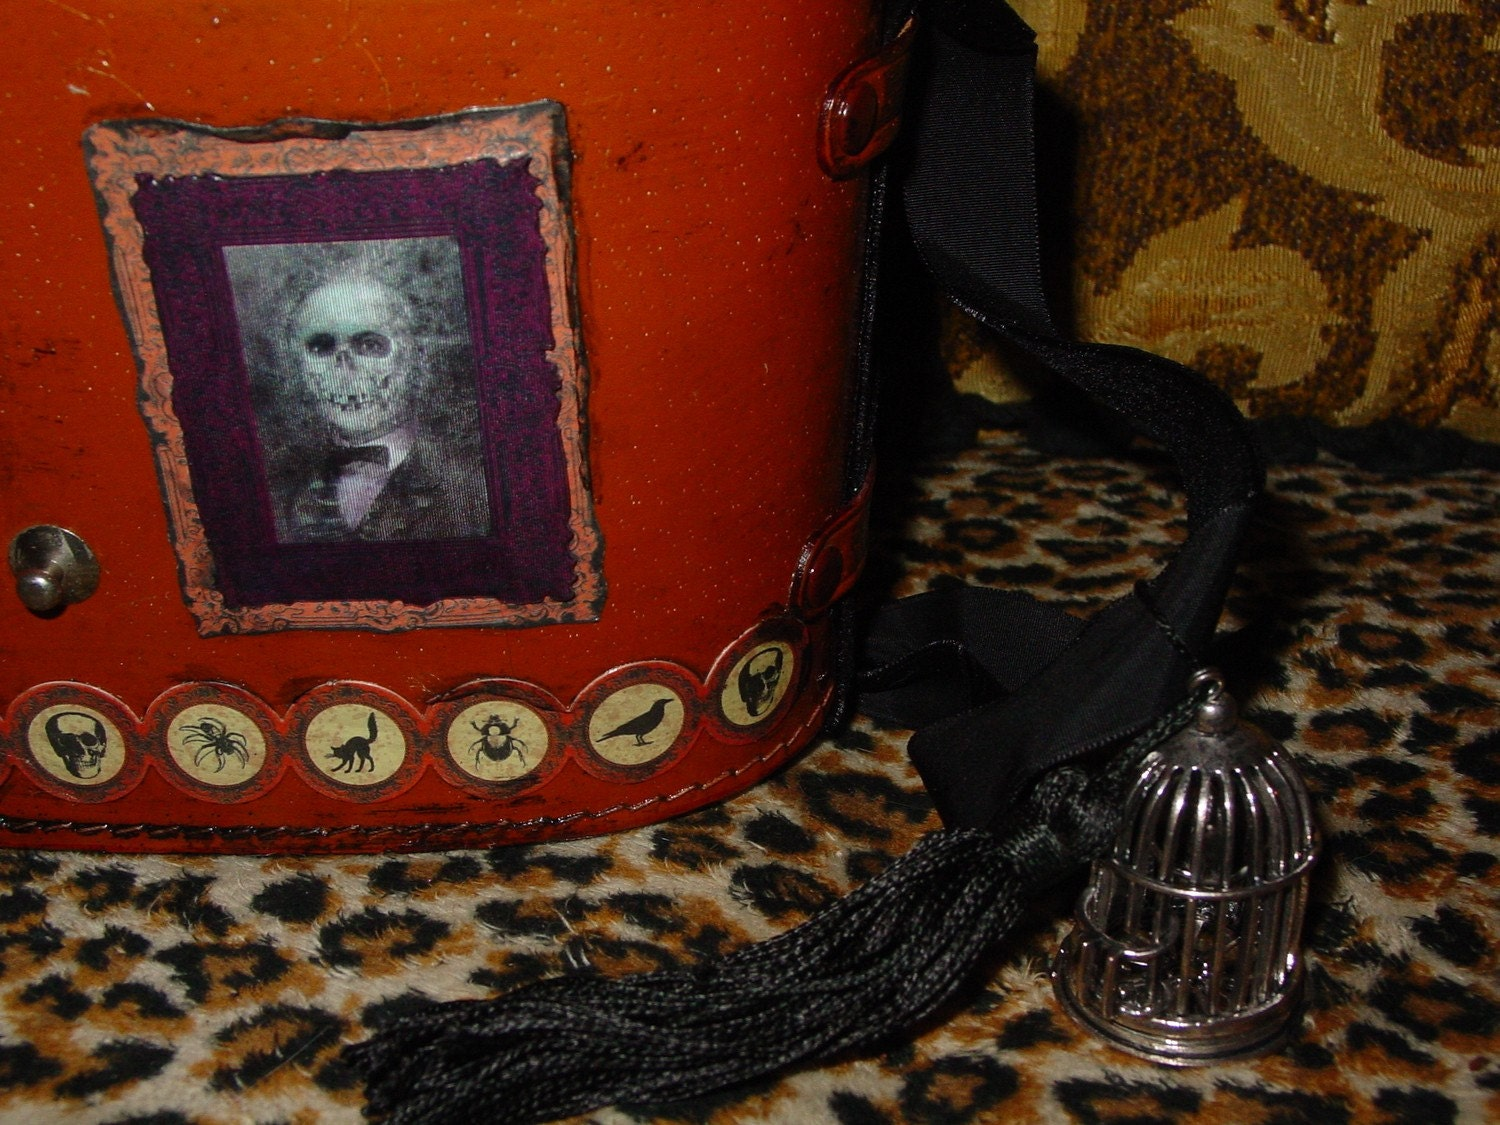 HALLOWEEN Gothic  vintage purse by  C. Reinke with holograph  and other spooky portrait  great TAROT CASE